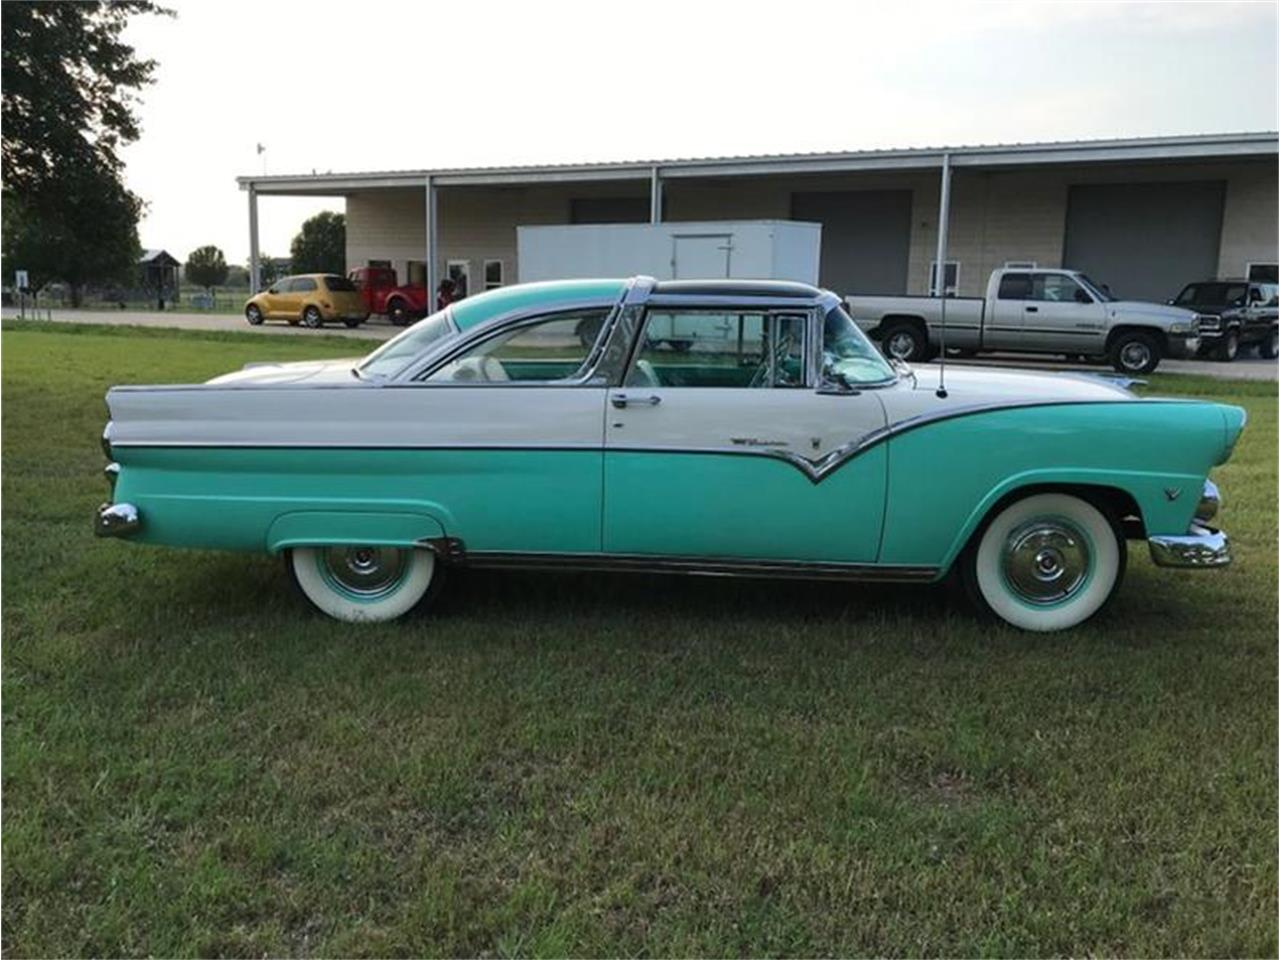 Large Picture of '55 Ford Crown Victoria located in Texas - $49,500.00 Offered by Street Dreams Texas - QABS